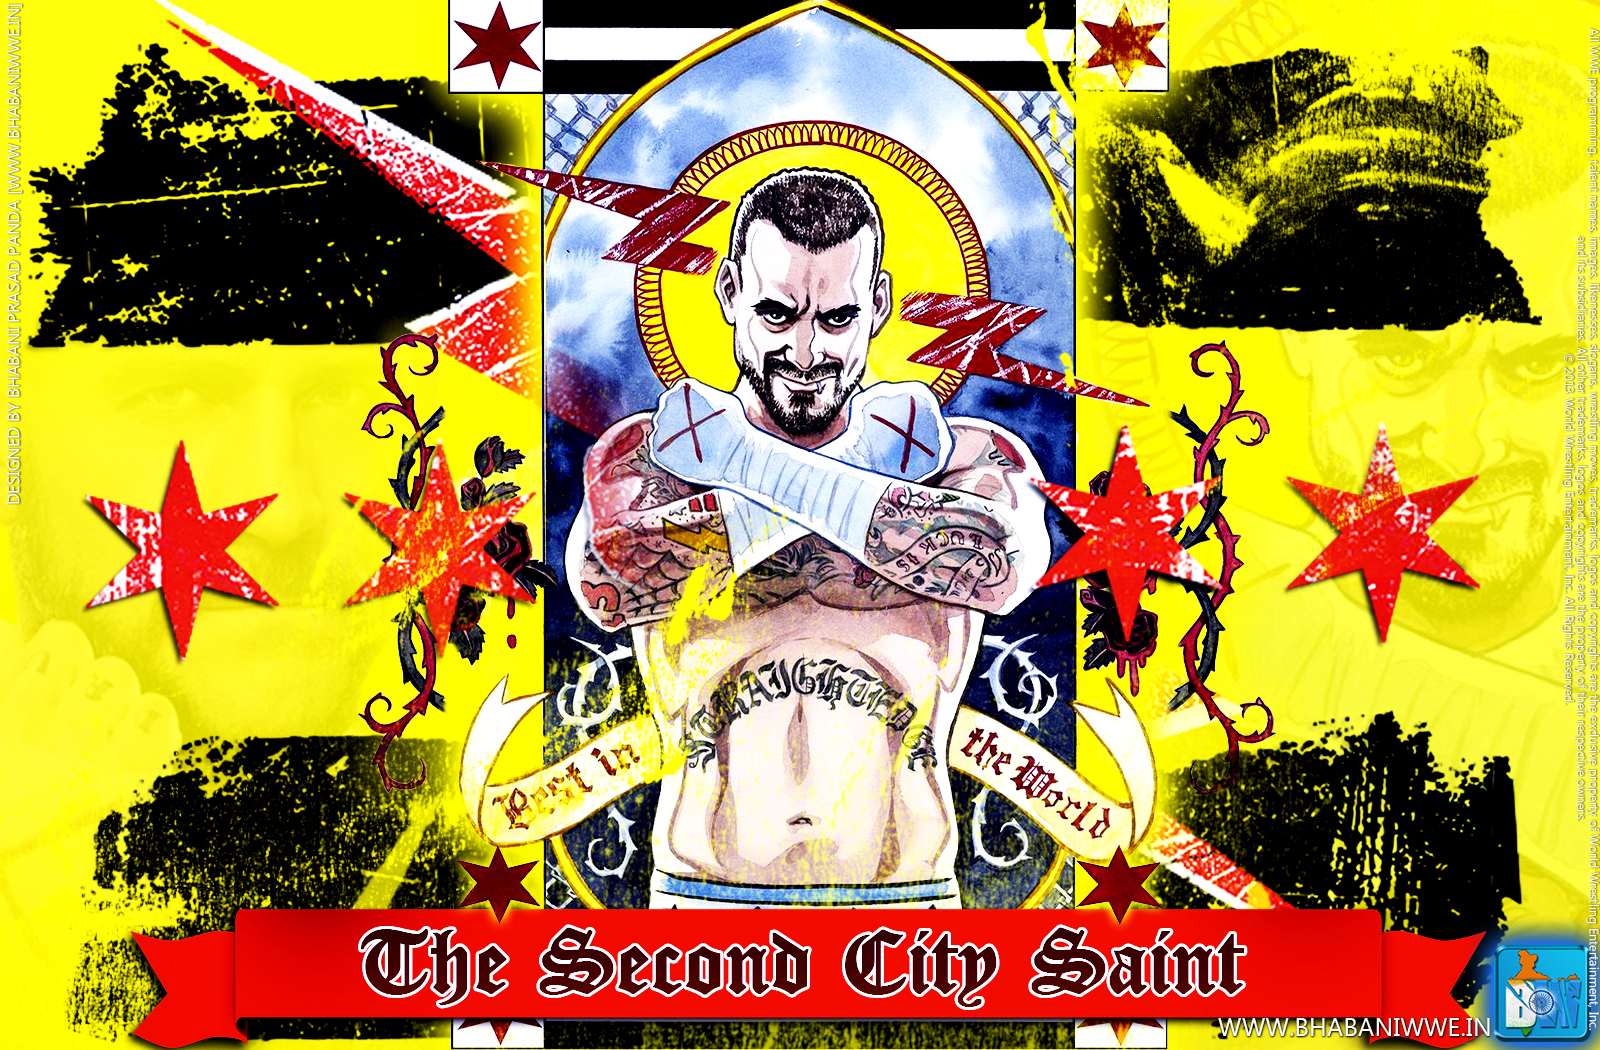 http://2.bp.blogspot.com/-7QCP_4yx-mI/UWwnqgXTEXI/AAAAAAAAXQQ/72--1QdwJkY/s1600/cm_punk_the_second_city_saint_hq_wallpaper_by_bhabaniwwe.in.jpg